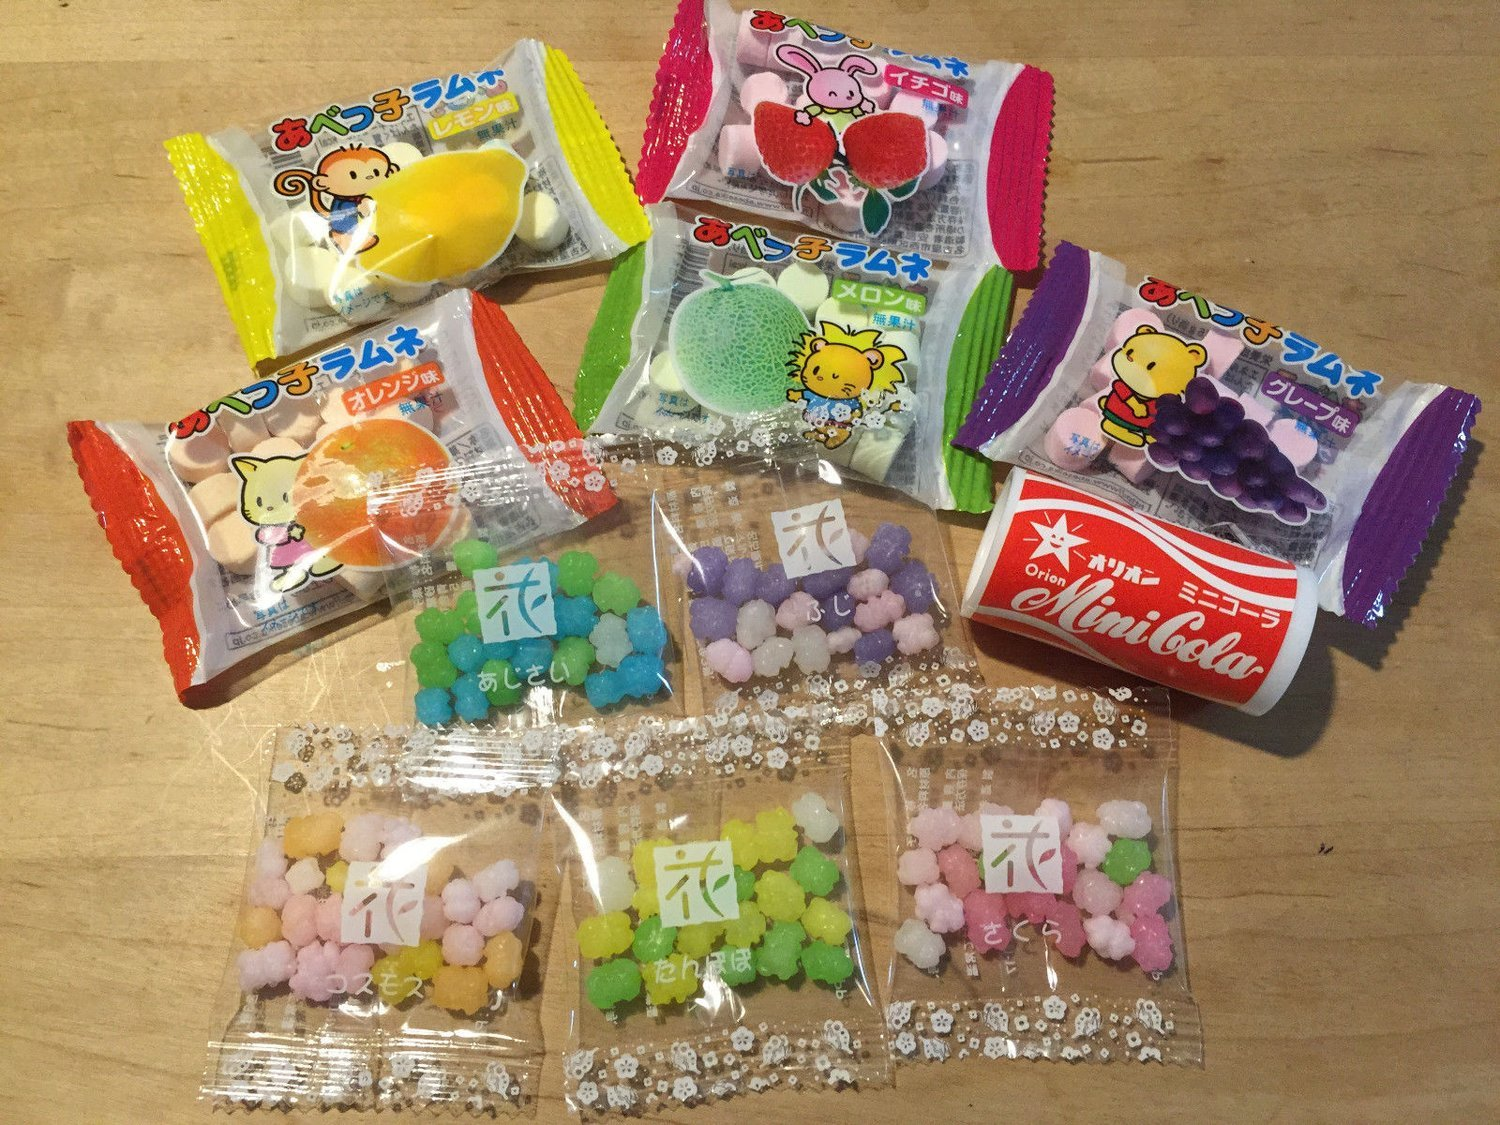 Kompeito, Konpeito and Abekko Ramune Assort Set